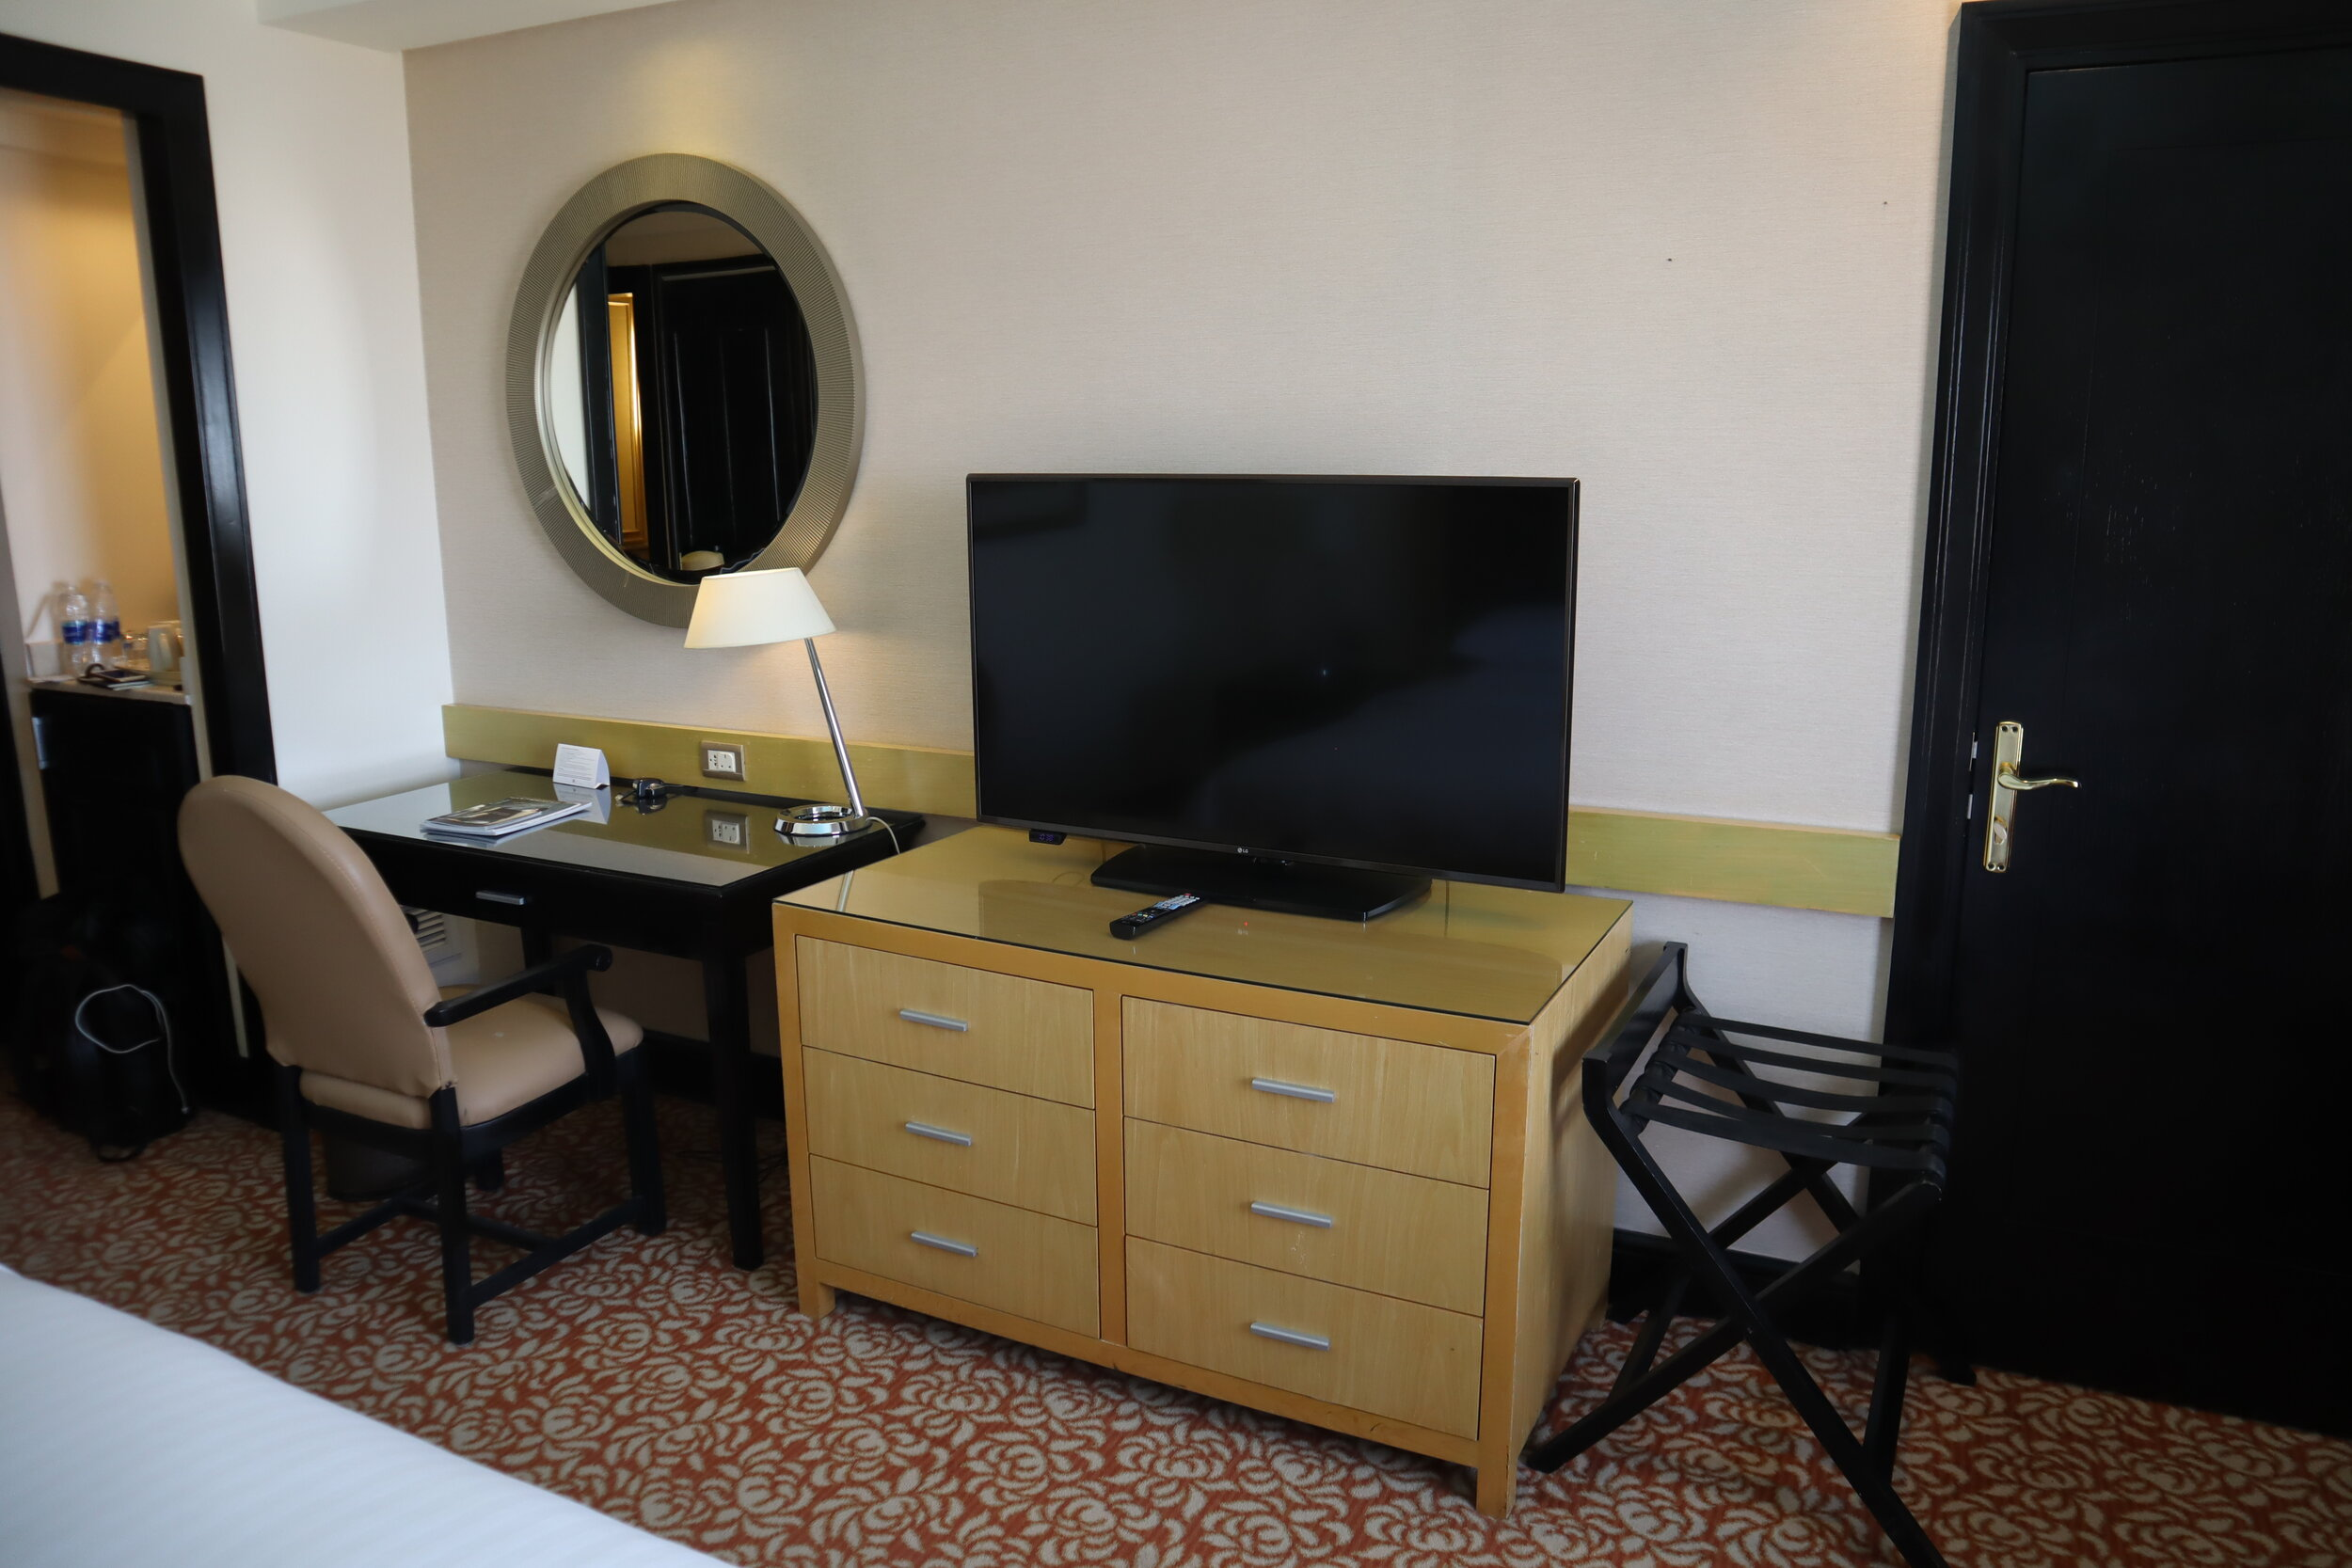 Marriott Petra – Desk and television